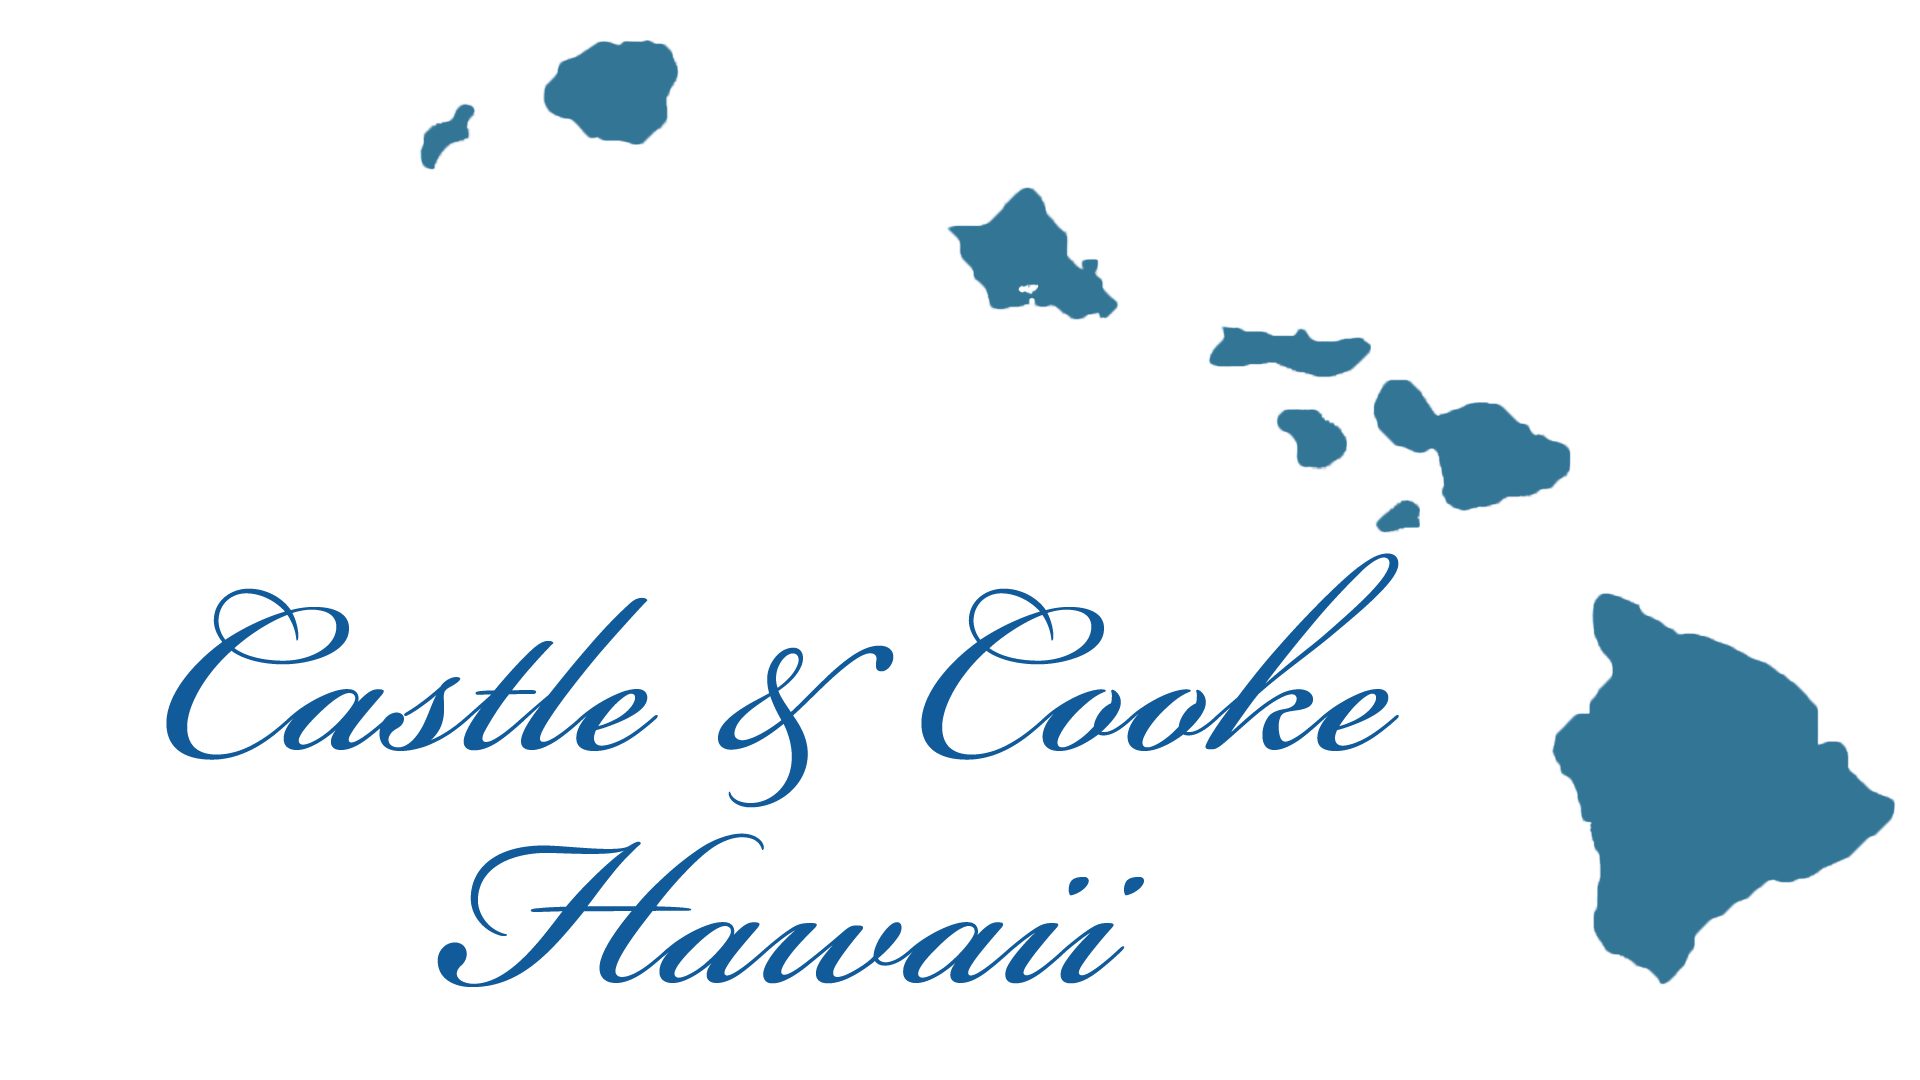 Castle-and-Cooke-Hawaii.png